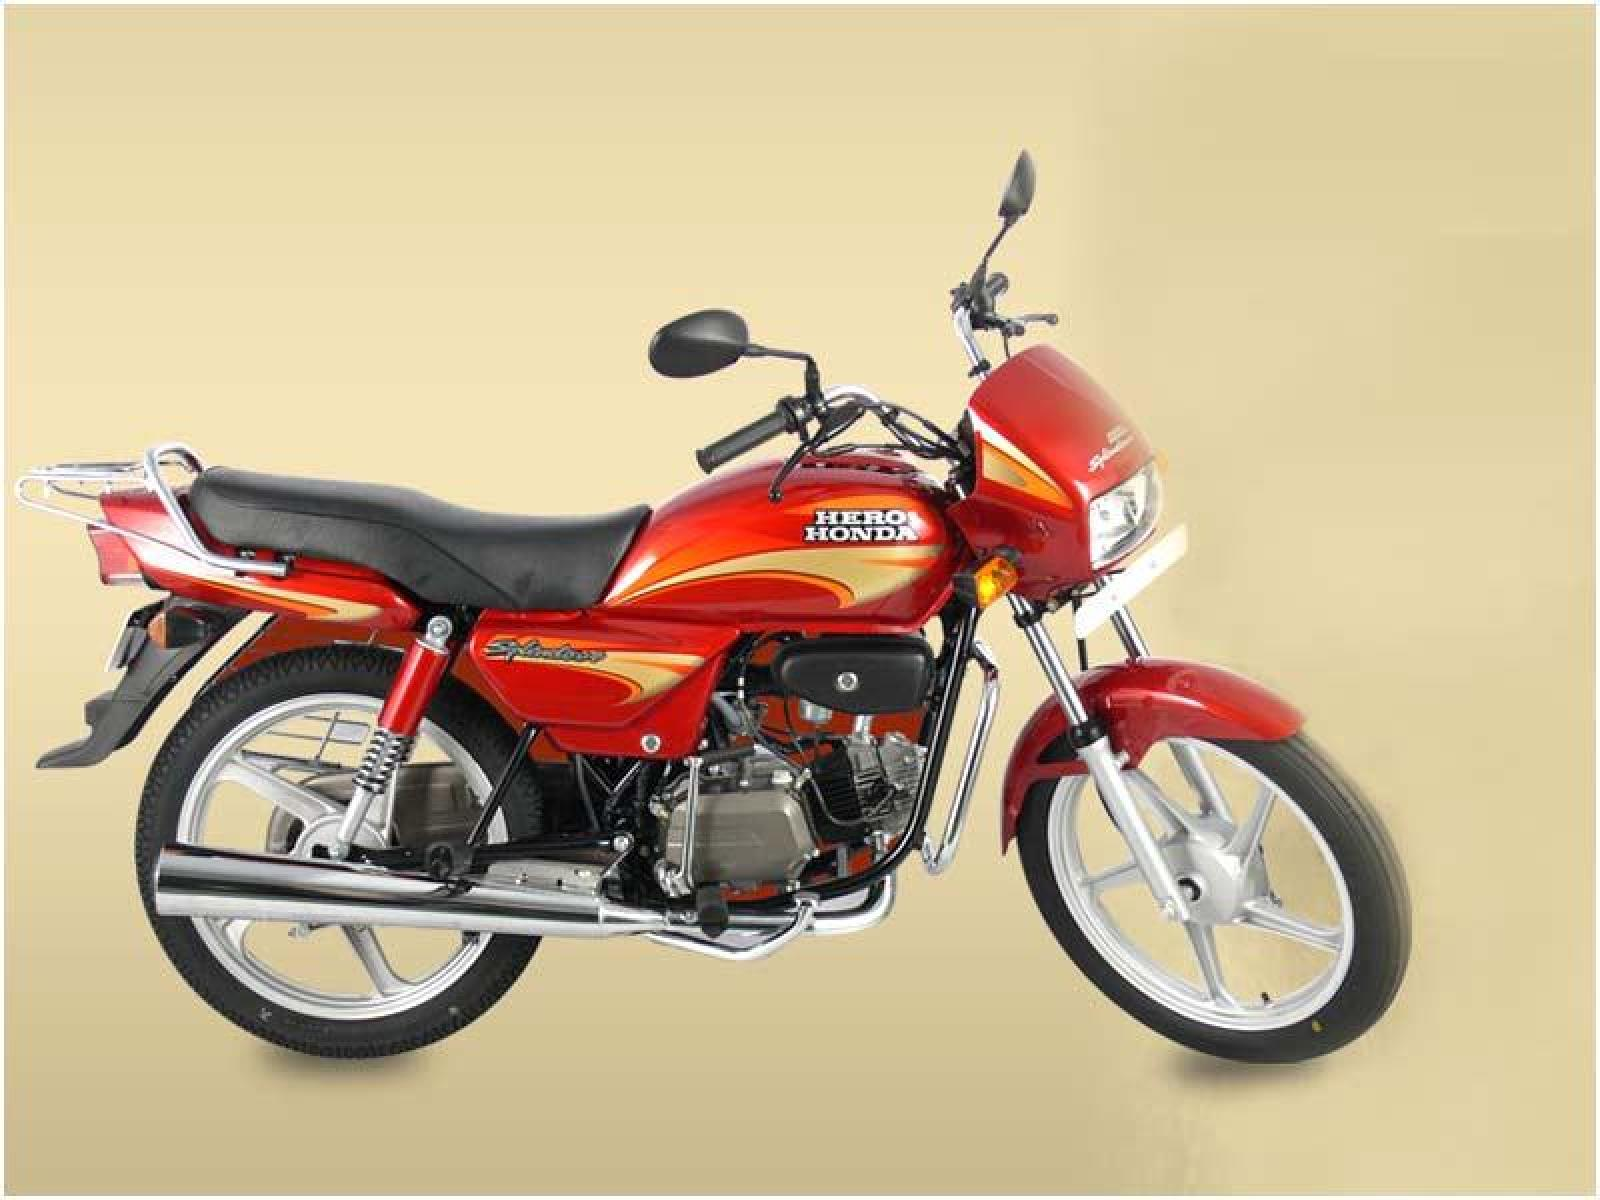 Hero Honda Splendor images #95897